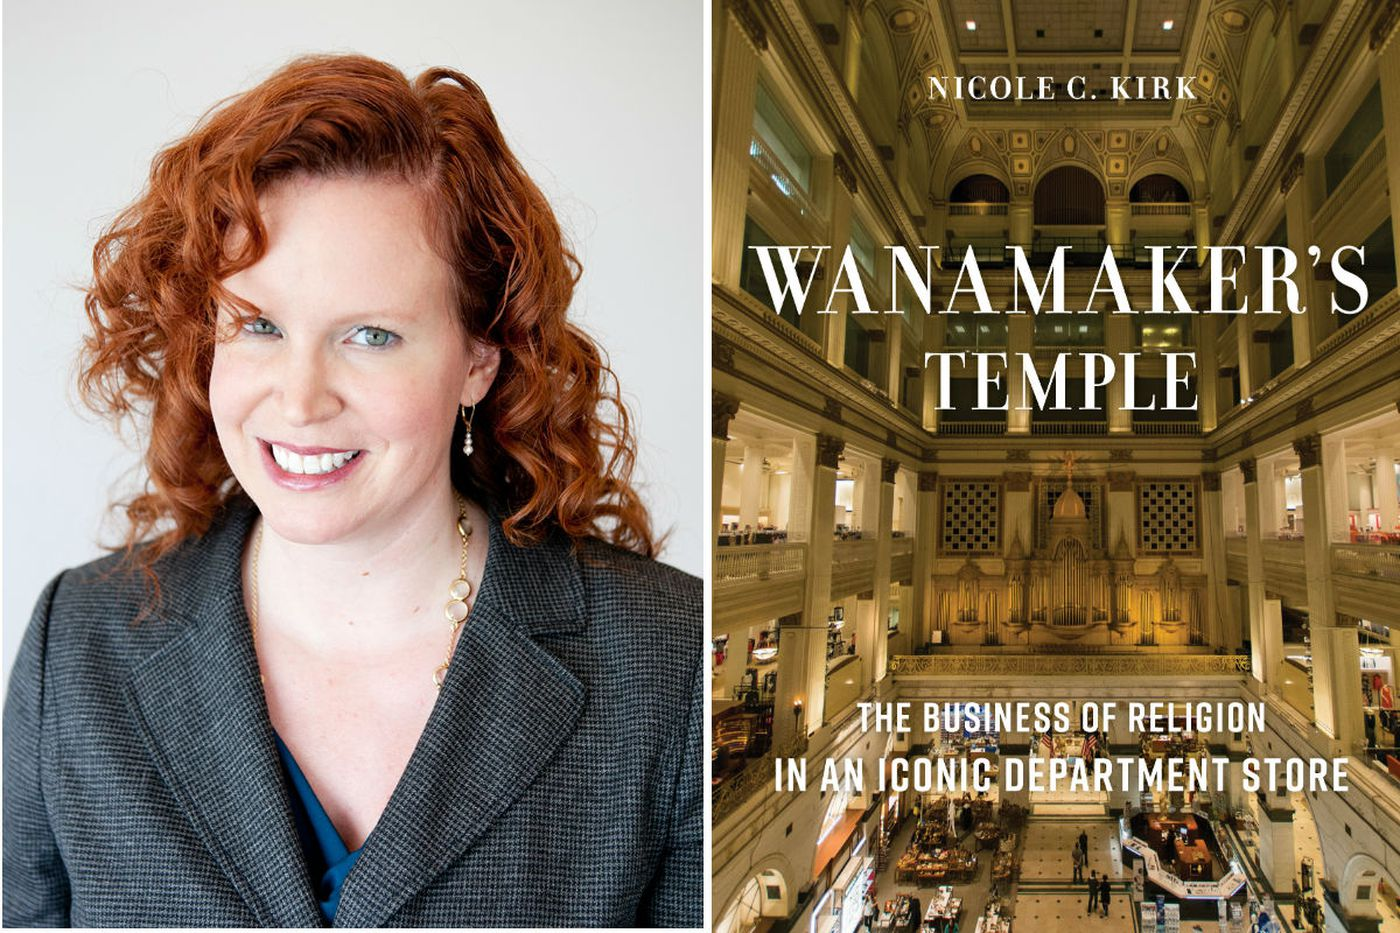 'Wanamaker's Temple': The religion of business – or vice versa